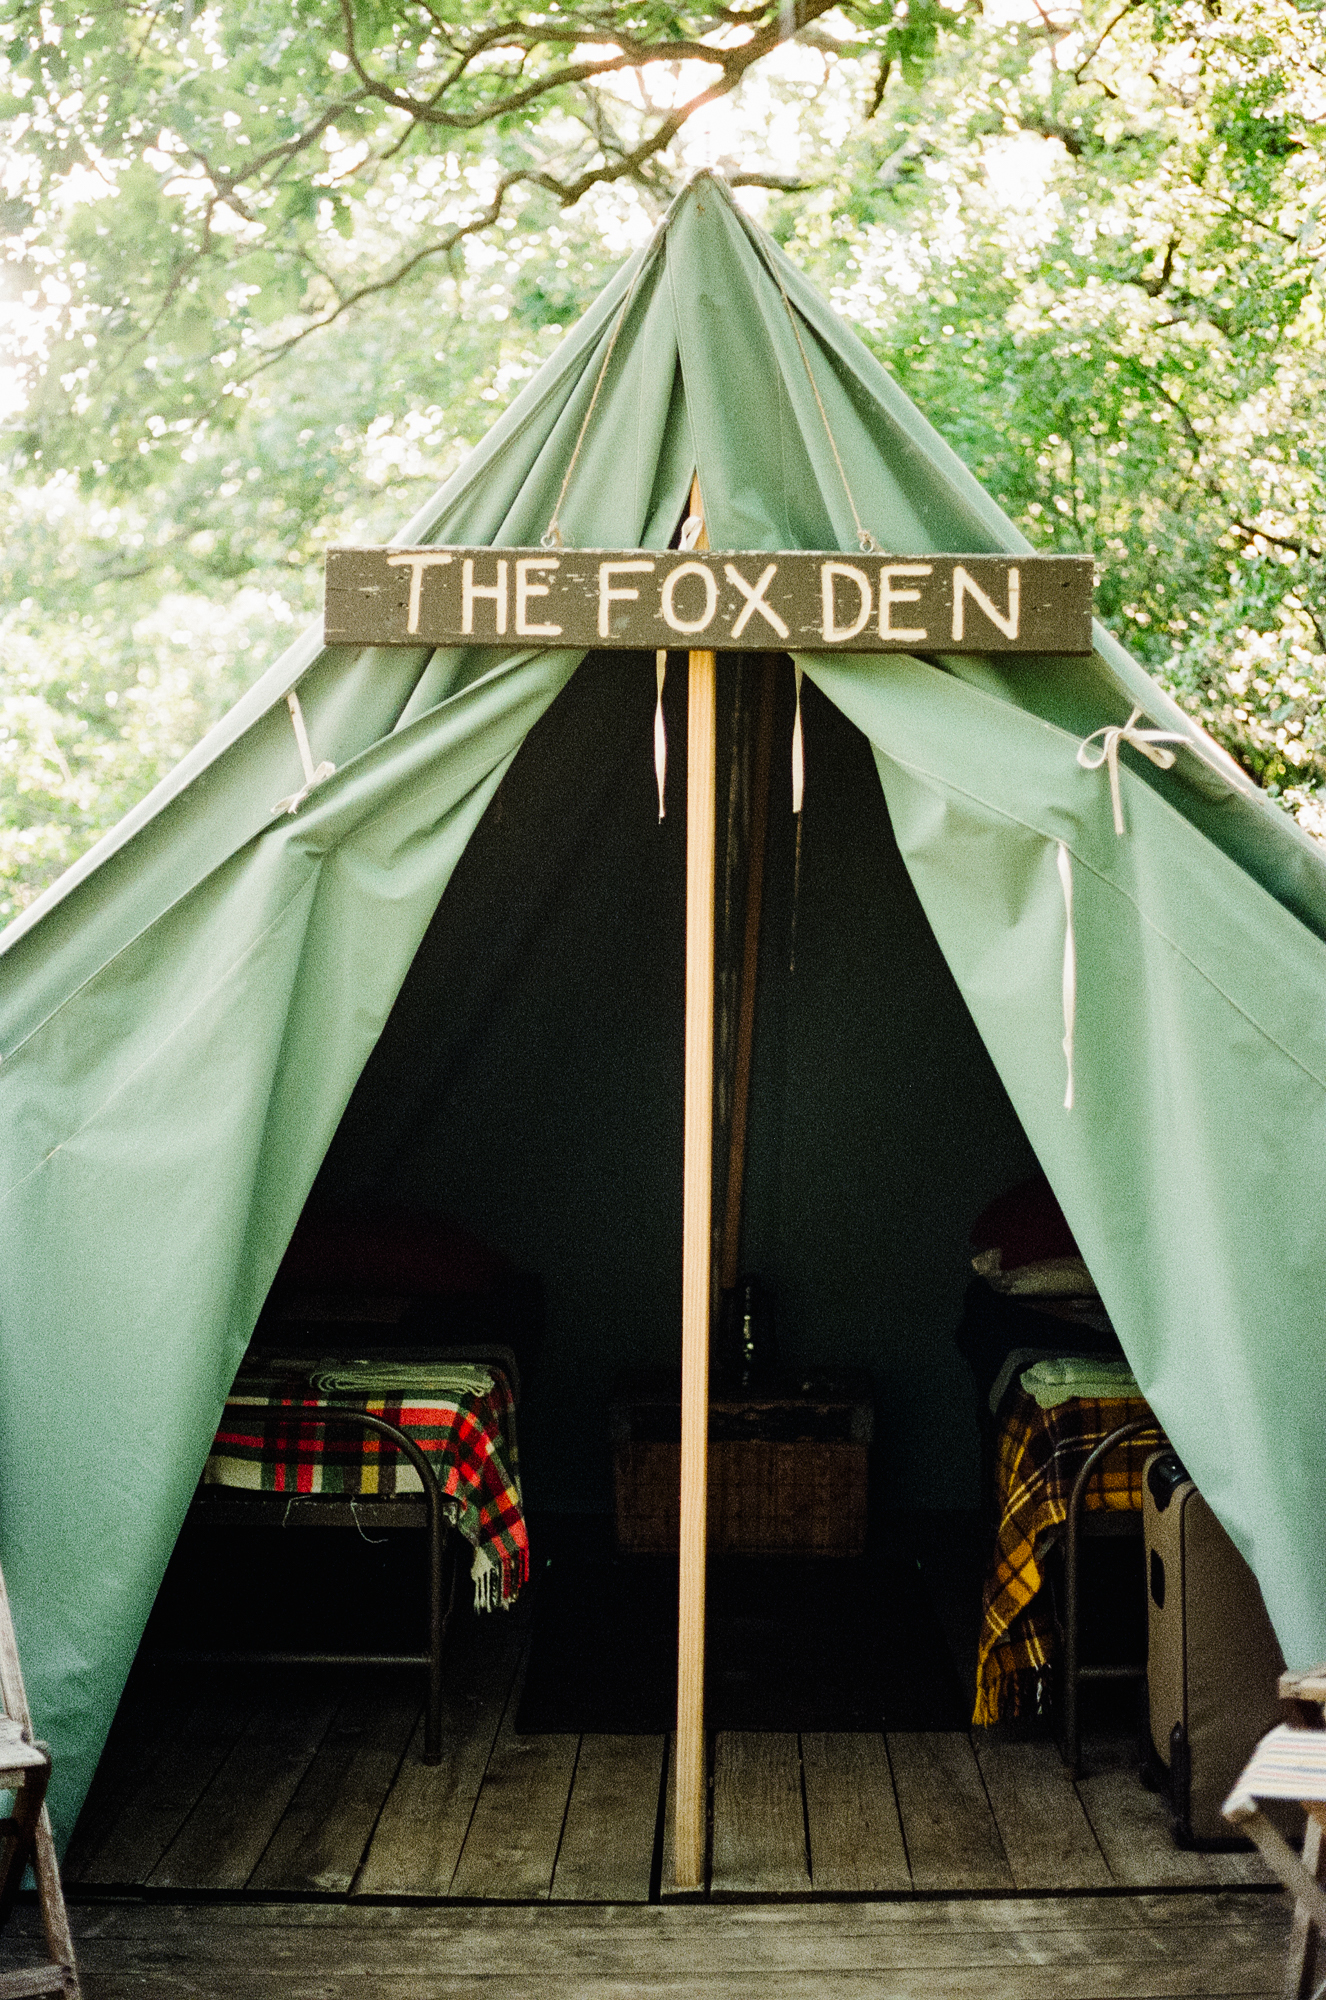 The Fox Den tent at  Camp Wandawega  in Elkhorn, Wisconsin during Let's Camp 2018 photographed for  Driftless magazine  and hosted by  The Glossary  and  Feminest .